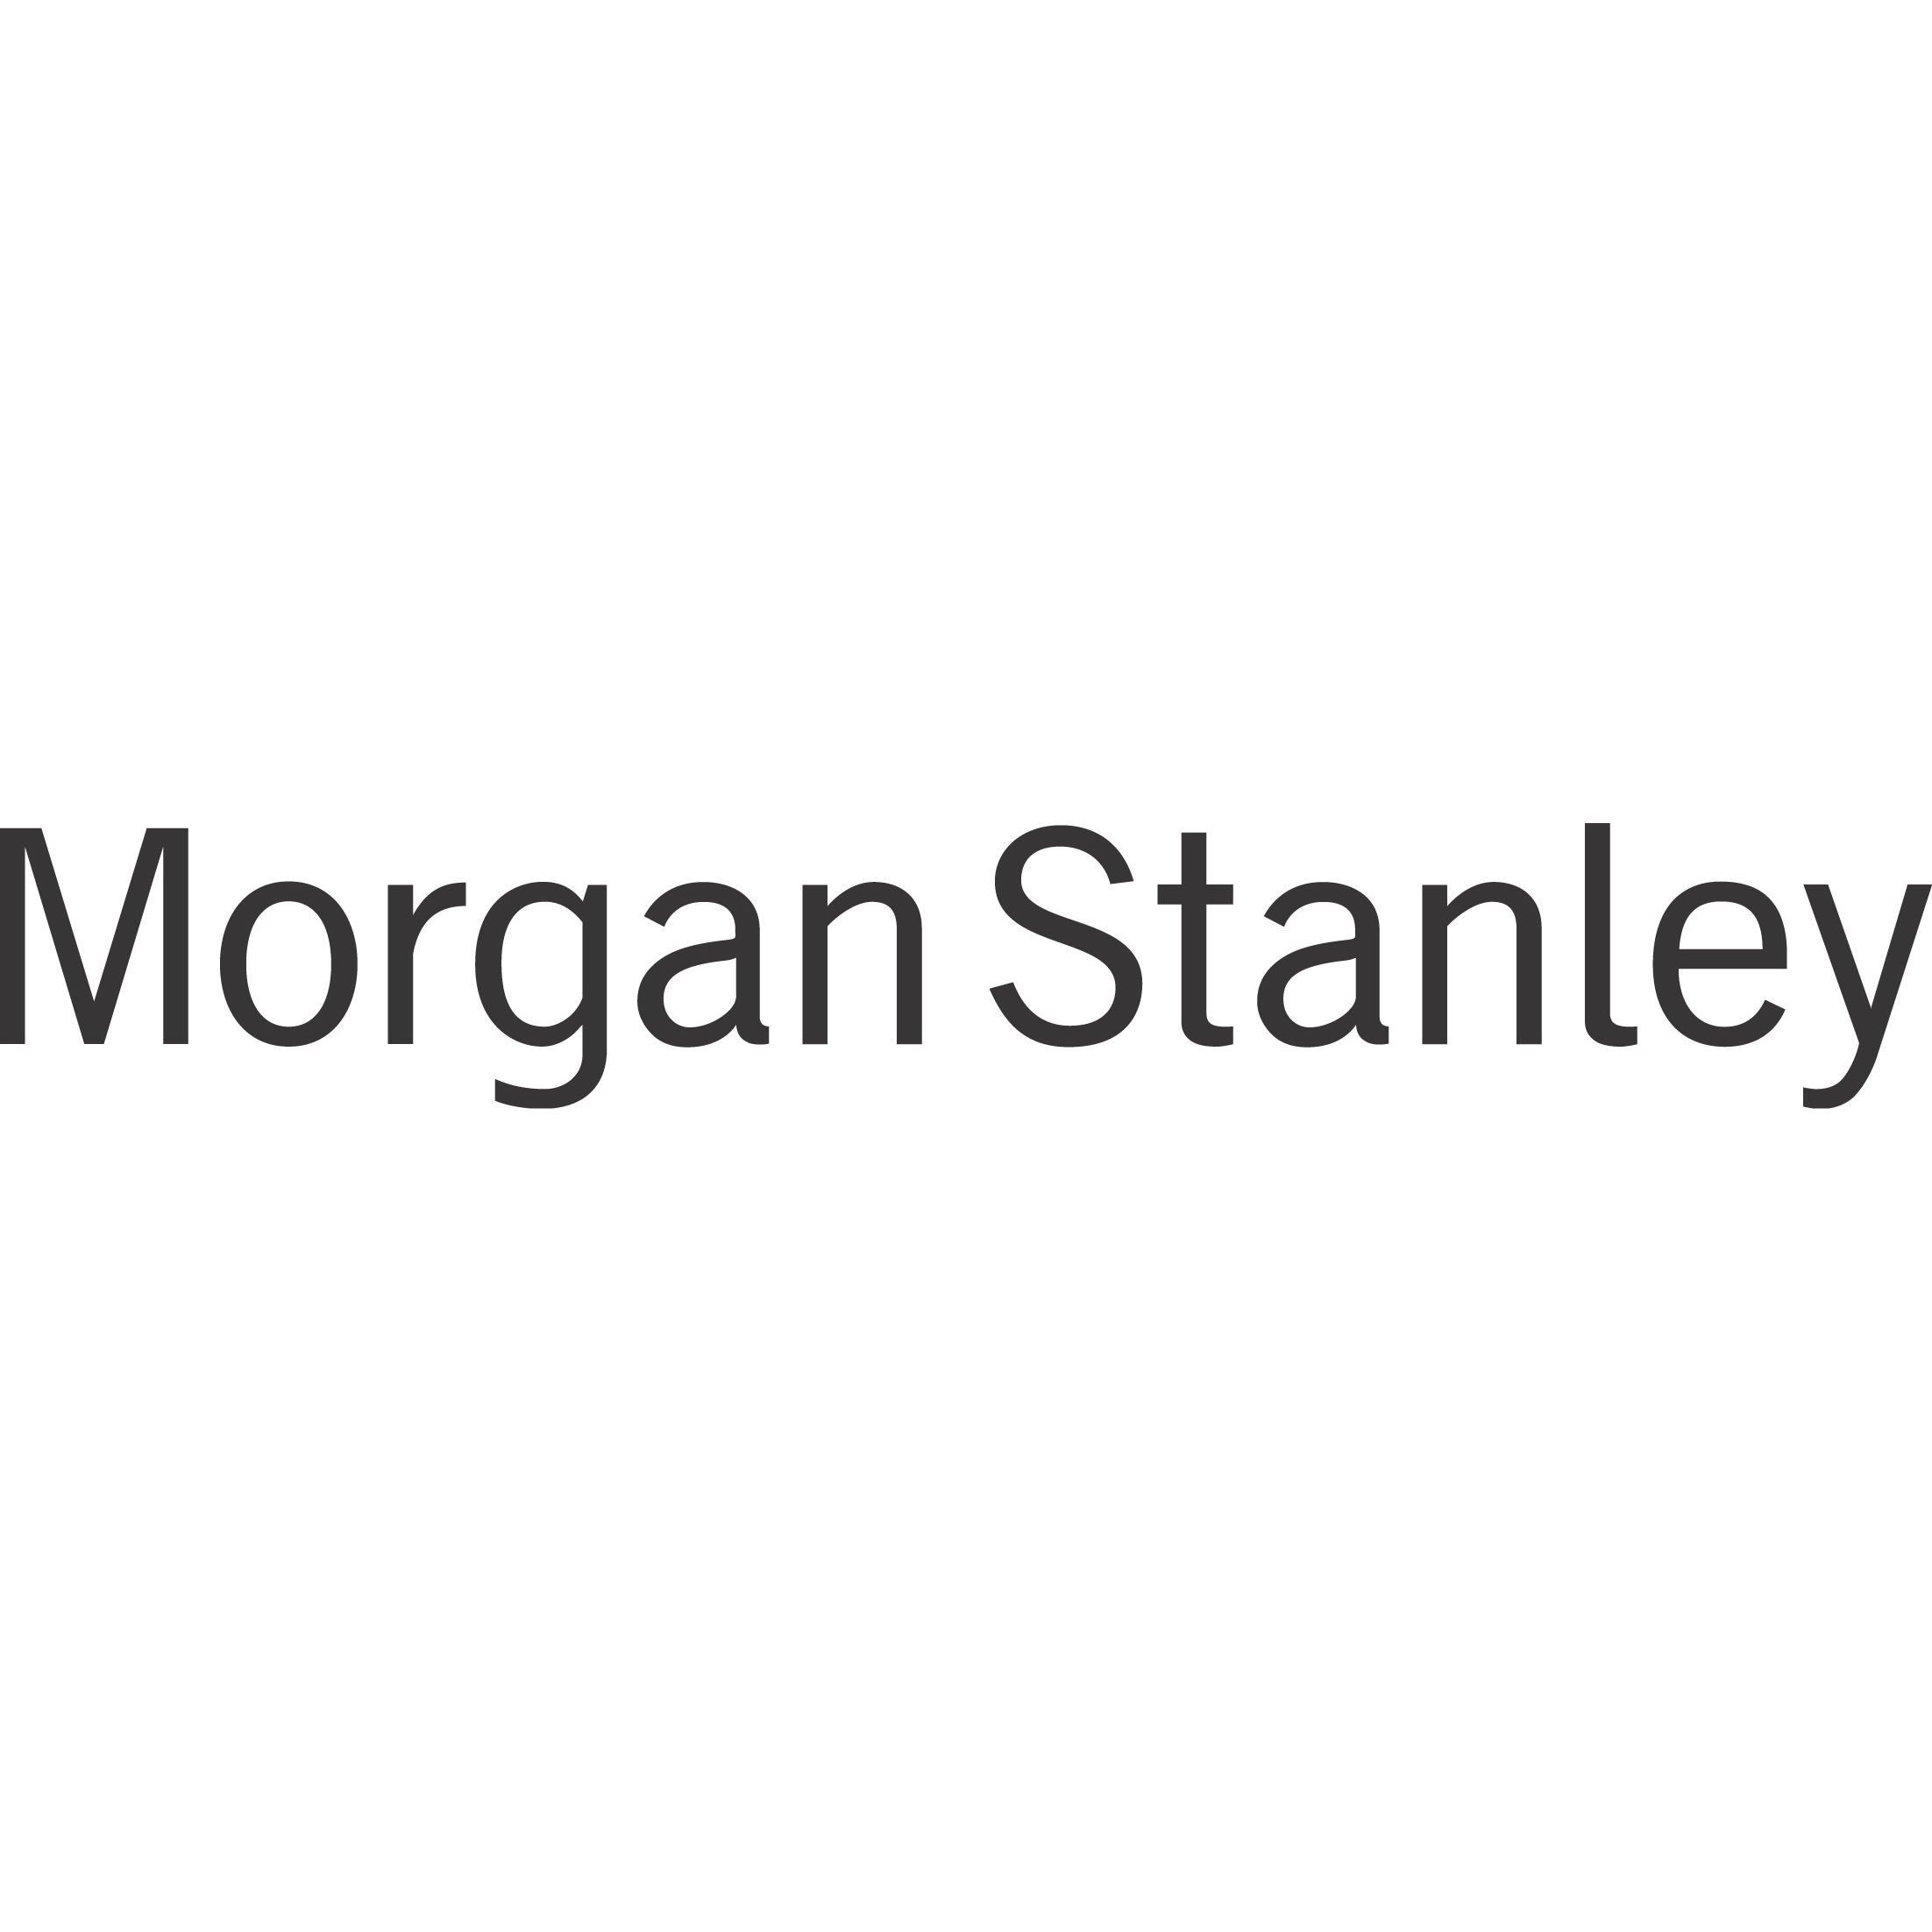 Gregory B Fieger - Morgan Stanley